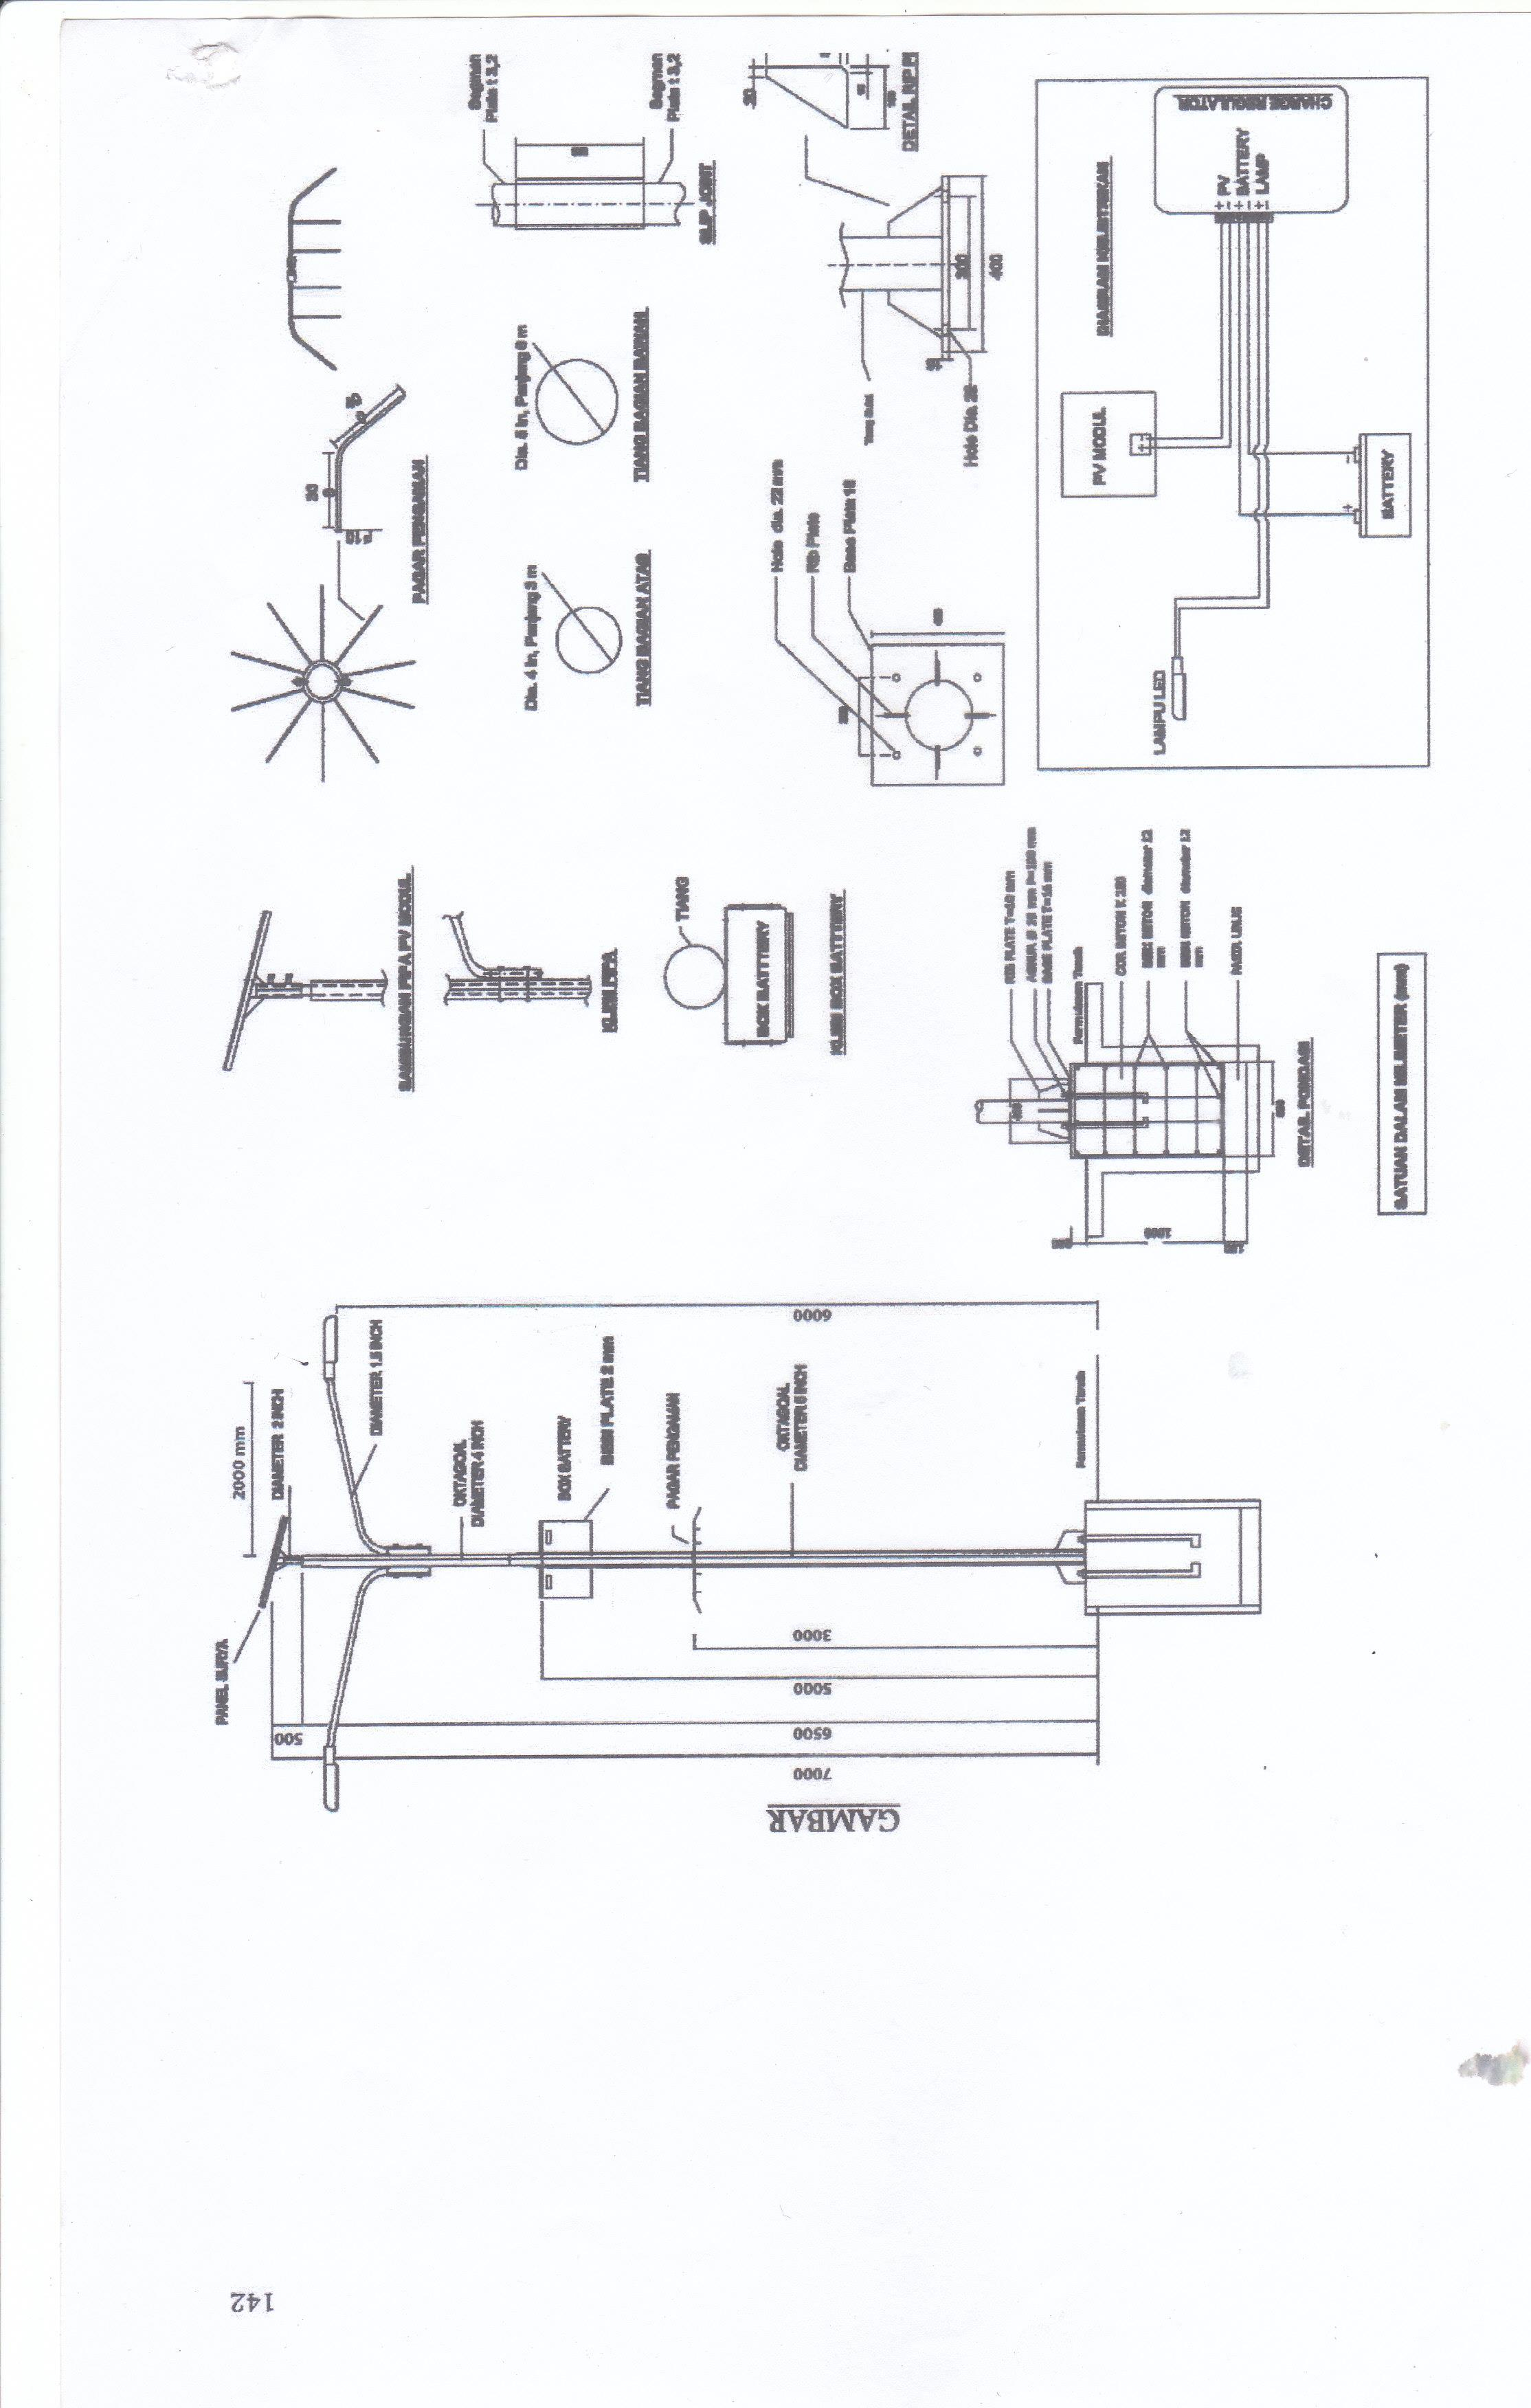 Sell Electric Pole Fabrication From Indonesia By Plts